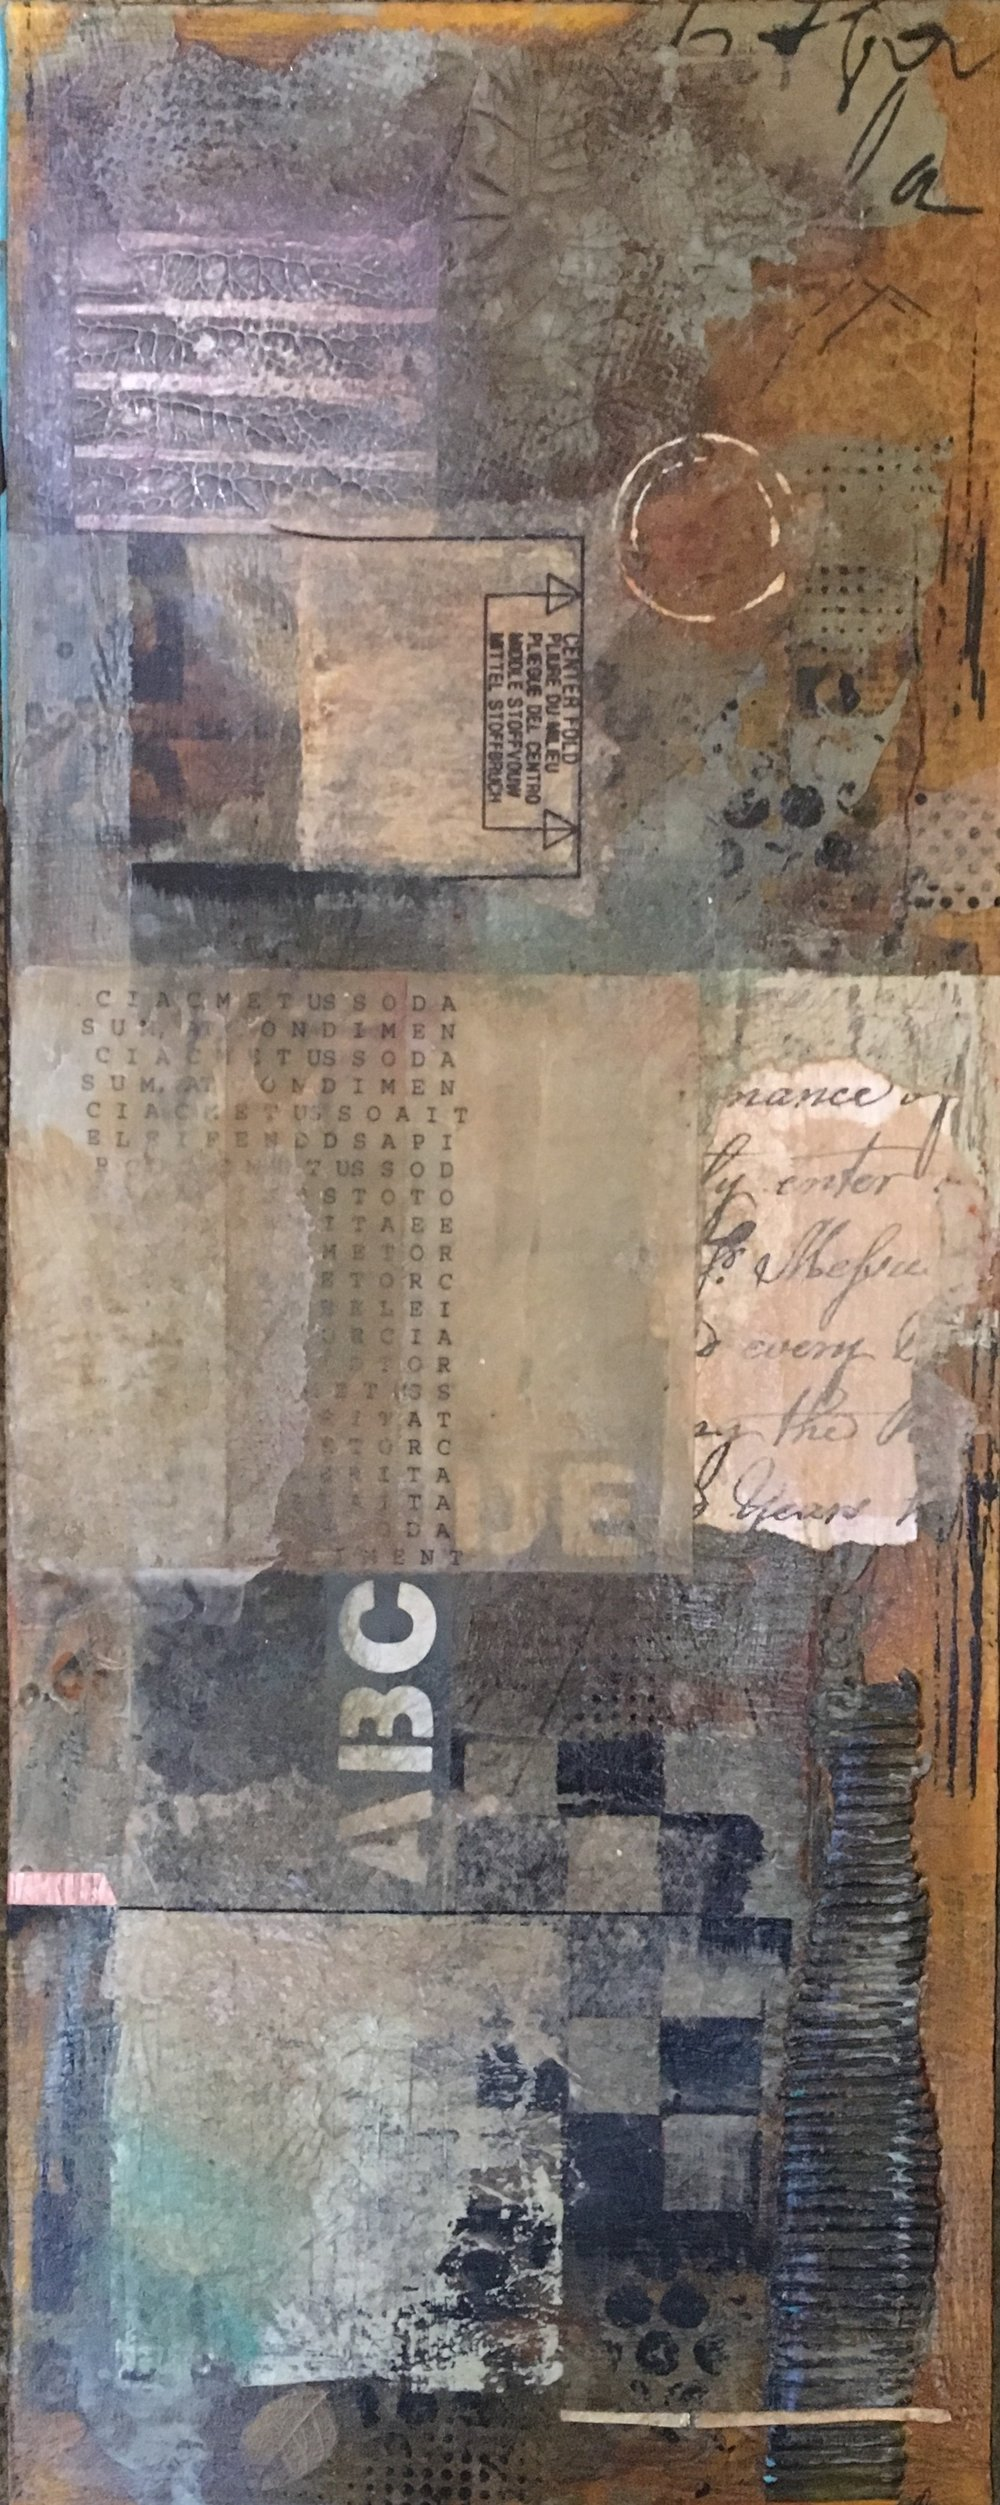 "Market Watch I 10"" x 22"" I Mixed media collage I $400"